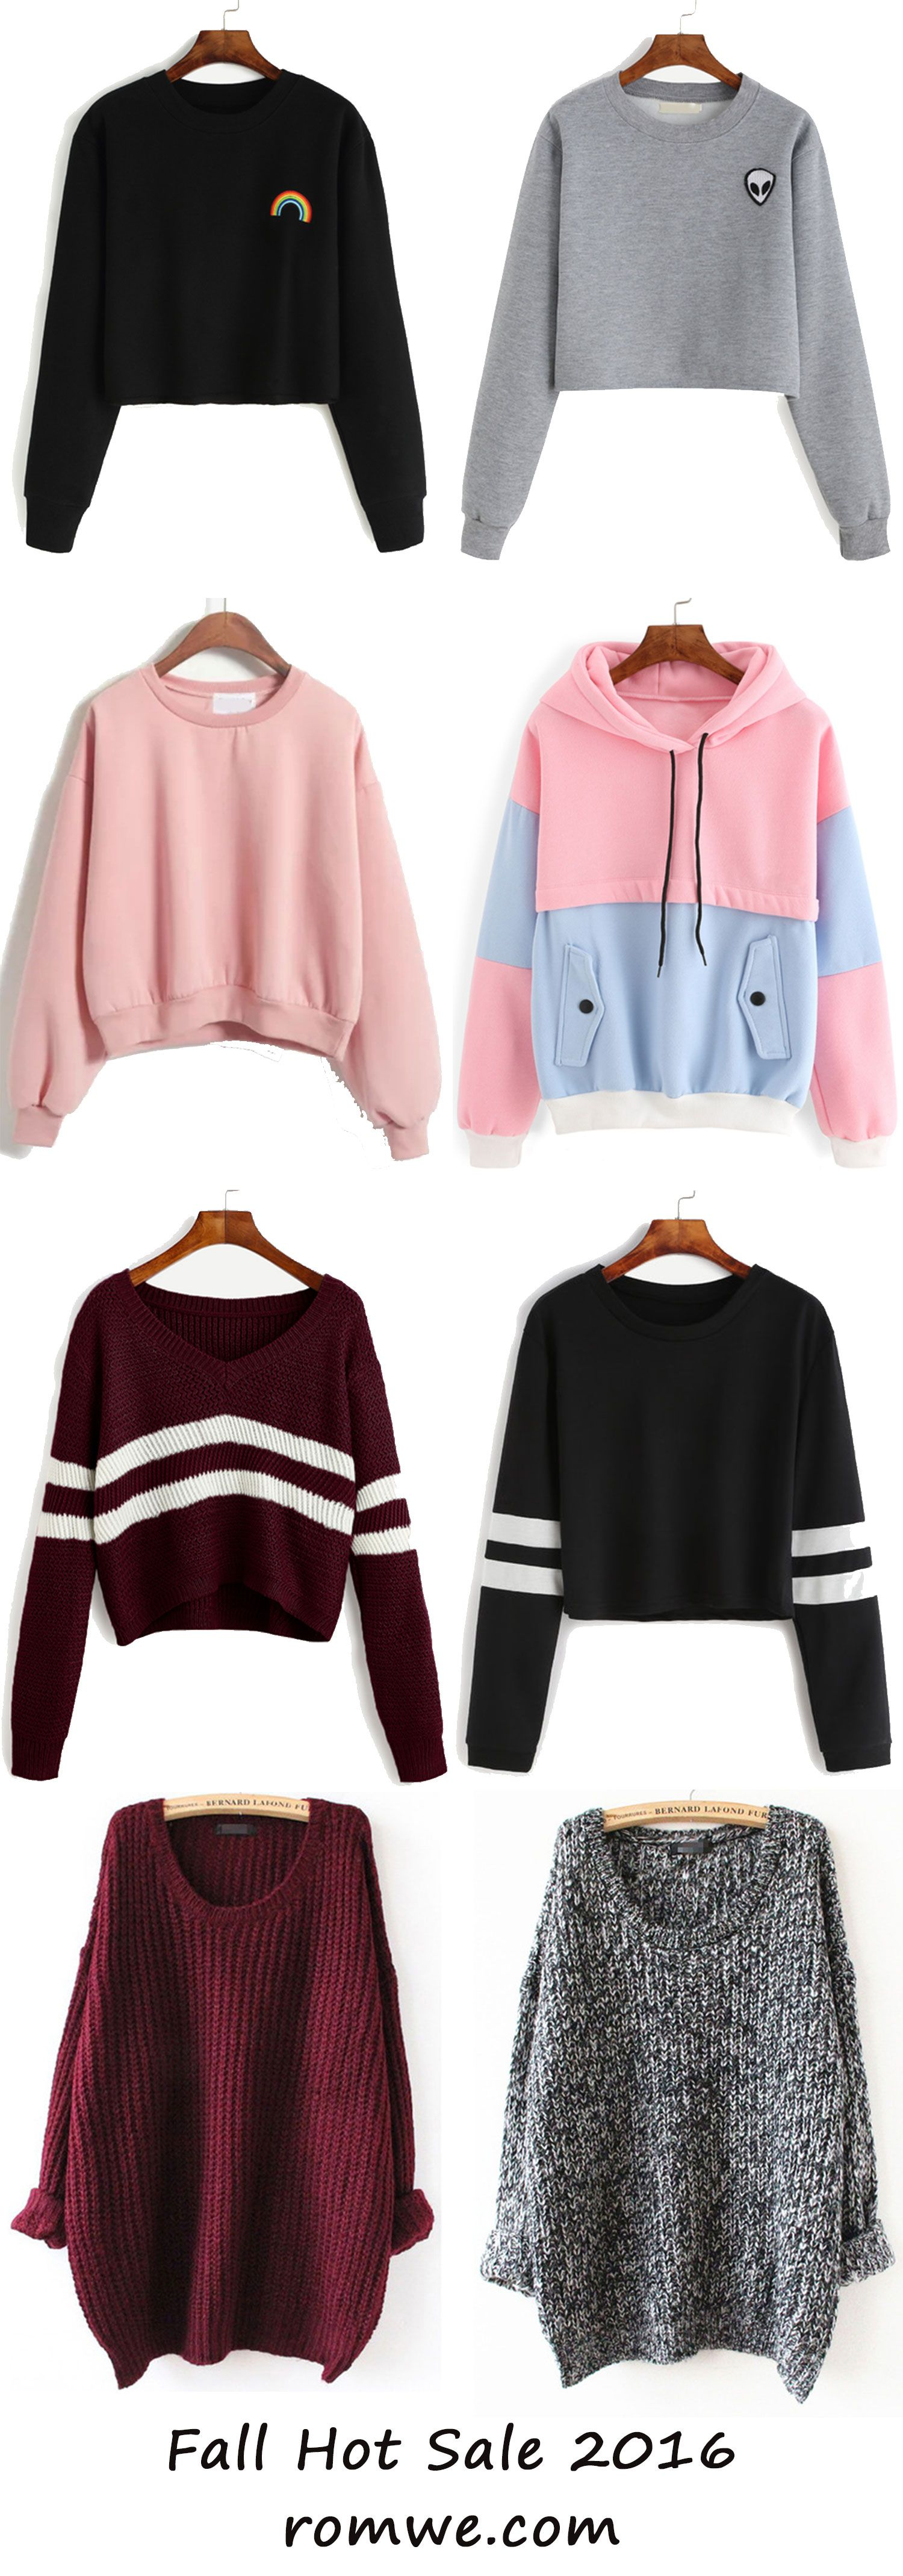 This are all ROMWE pieces   I think I might do a jumper haul from     This are all ROMWE pieces   I think I might do a jumper haul from ROMWE  before 6thf form  their jumpers are gorgeous  and really affordable